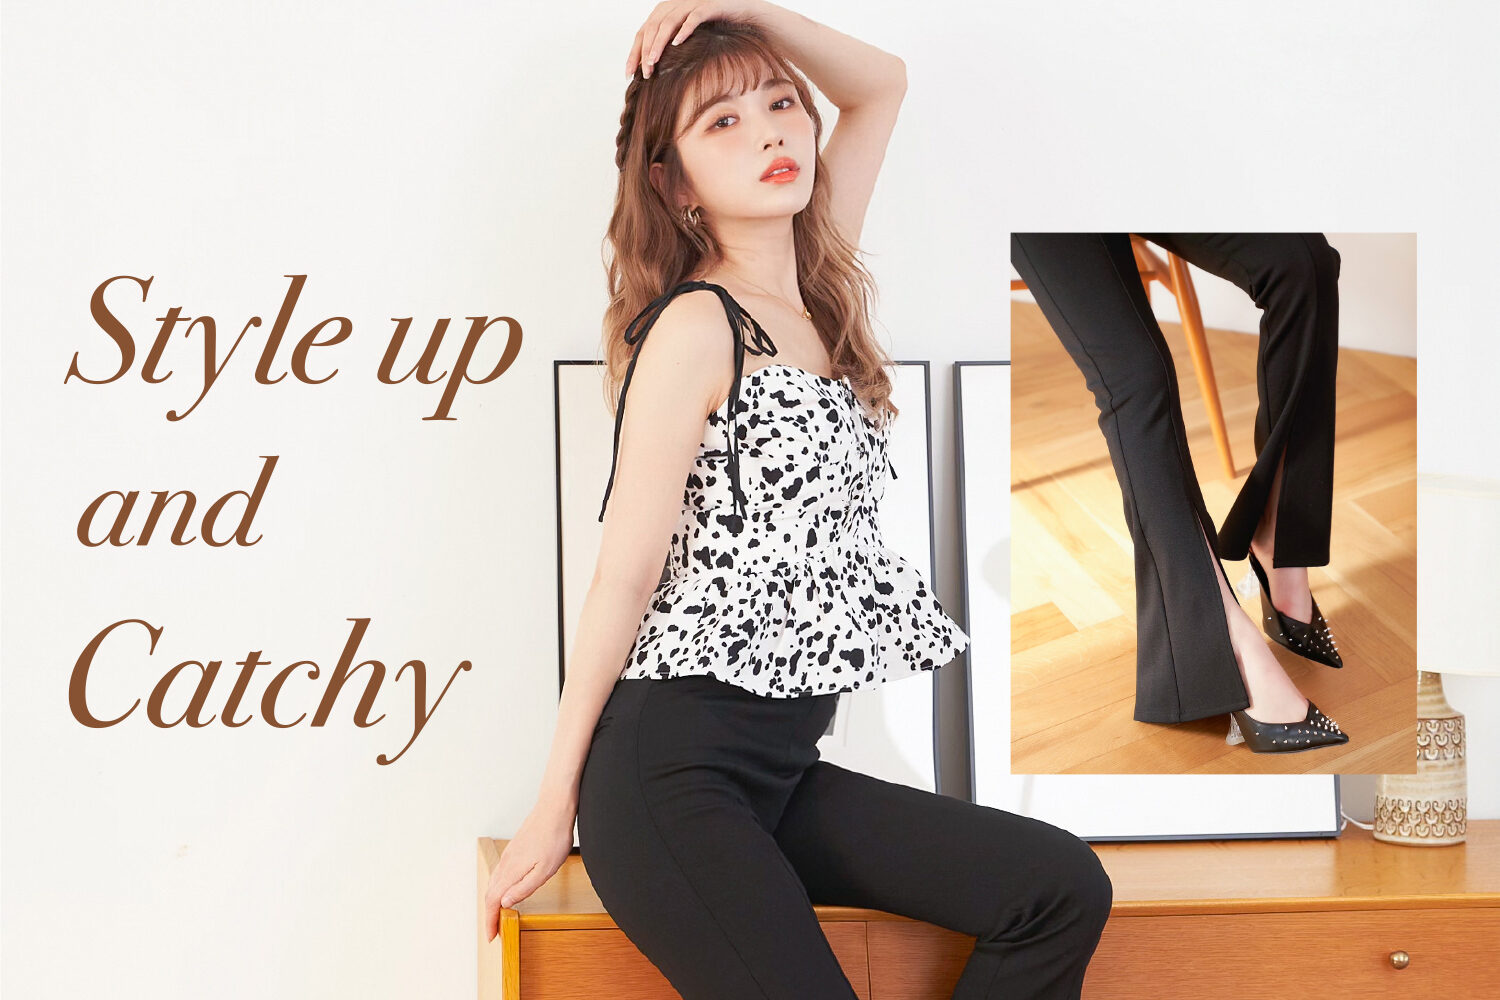 21SS Style up and catchy新作特集